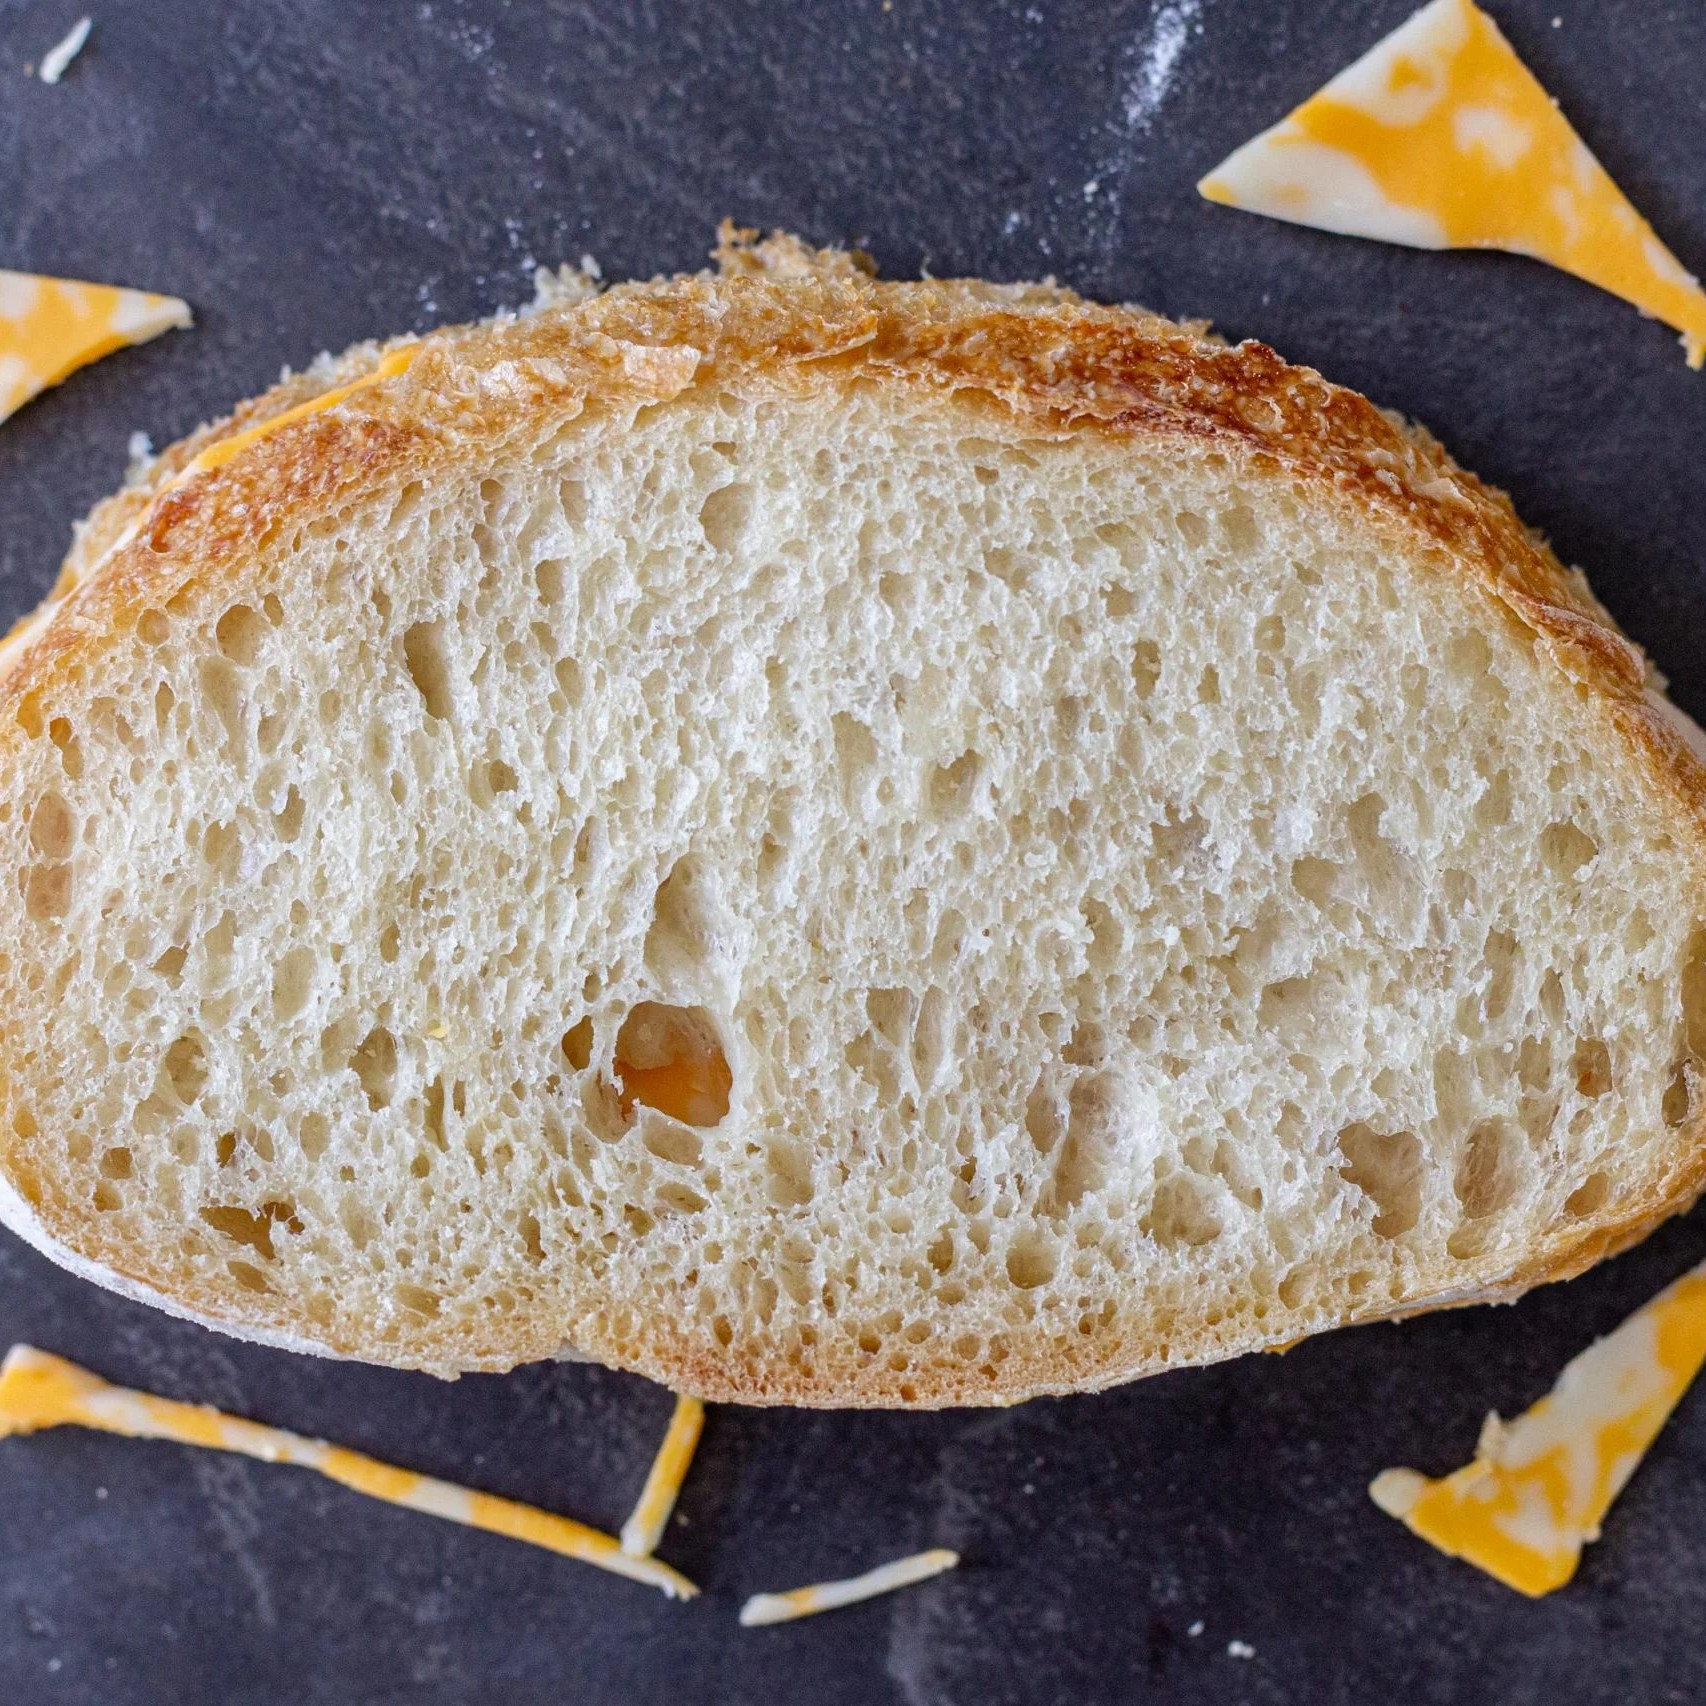 bread with pieces of cheese cut off